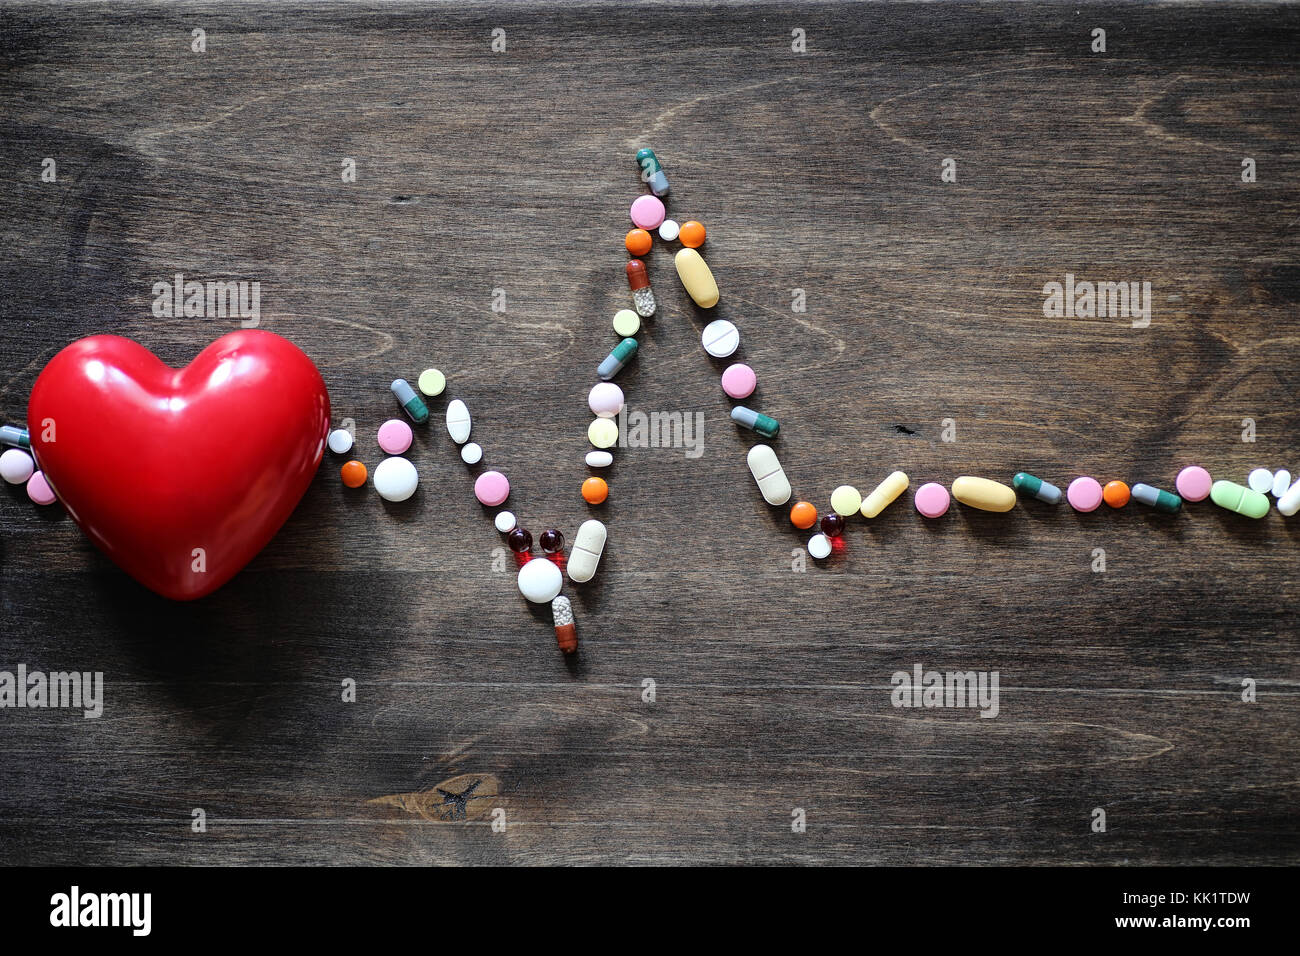 The Concept Of Medical Care For Heart Disease Cardiac Rhythm In The